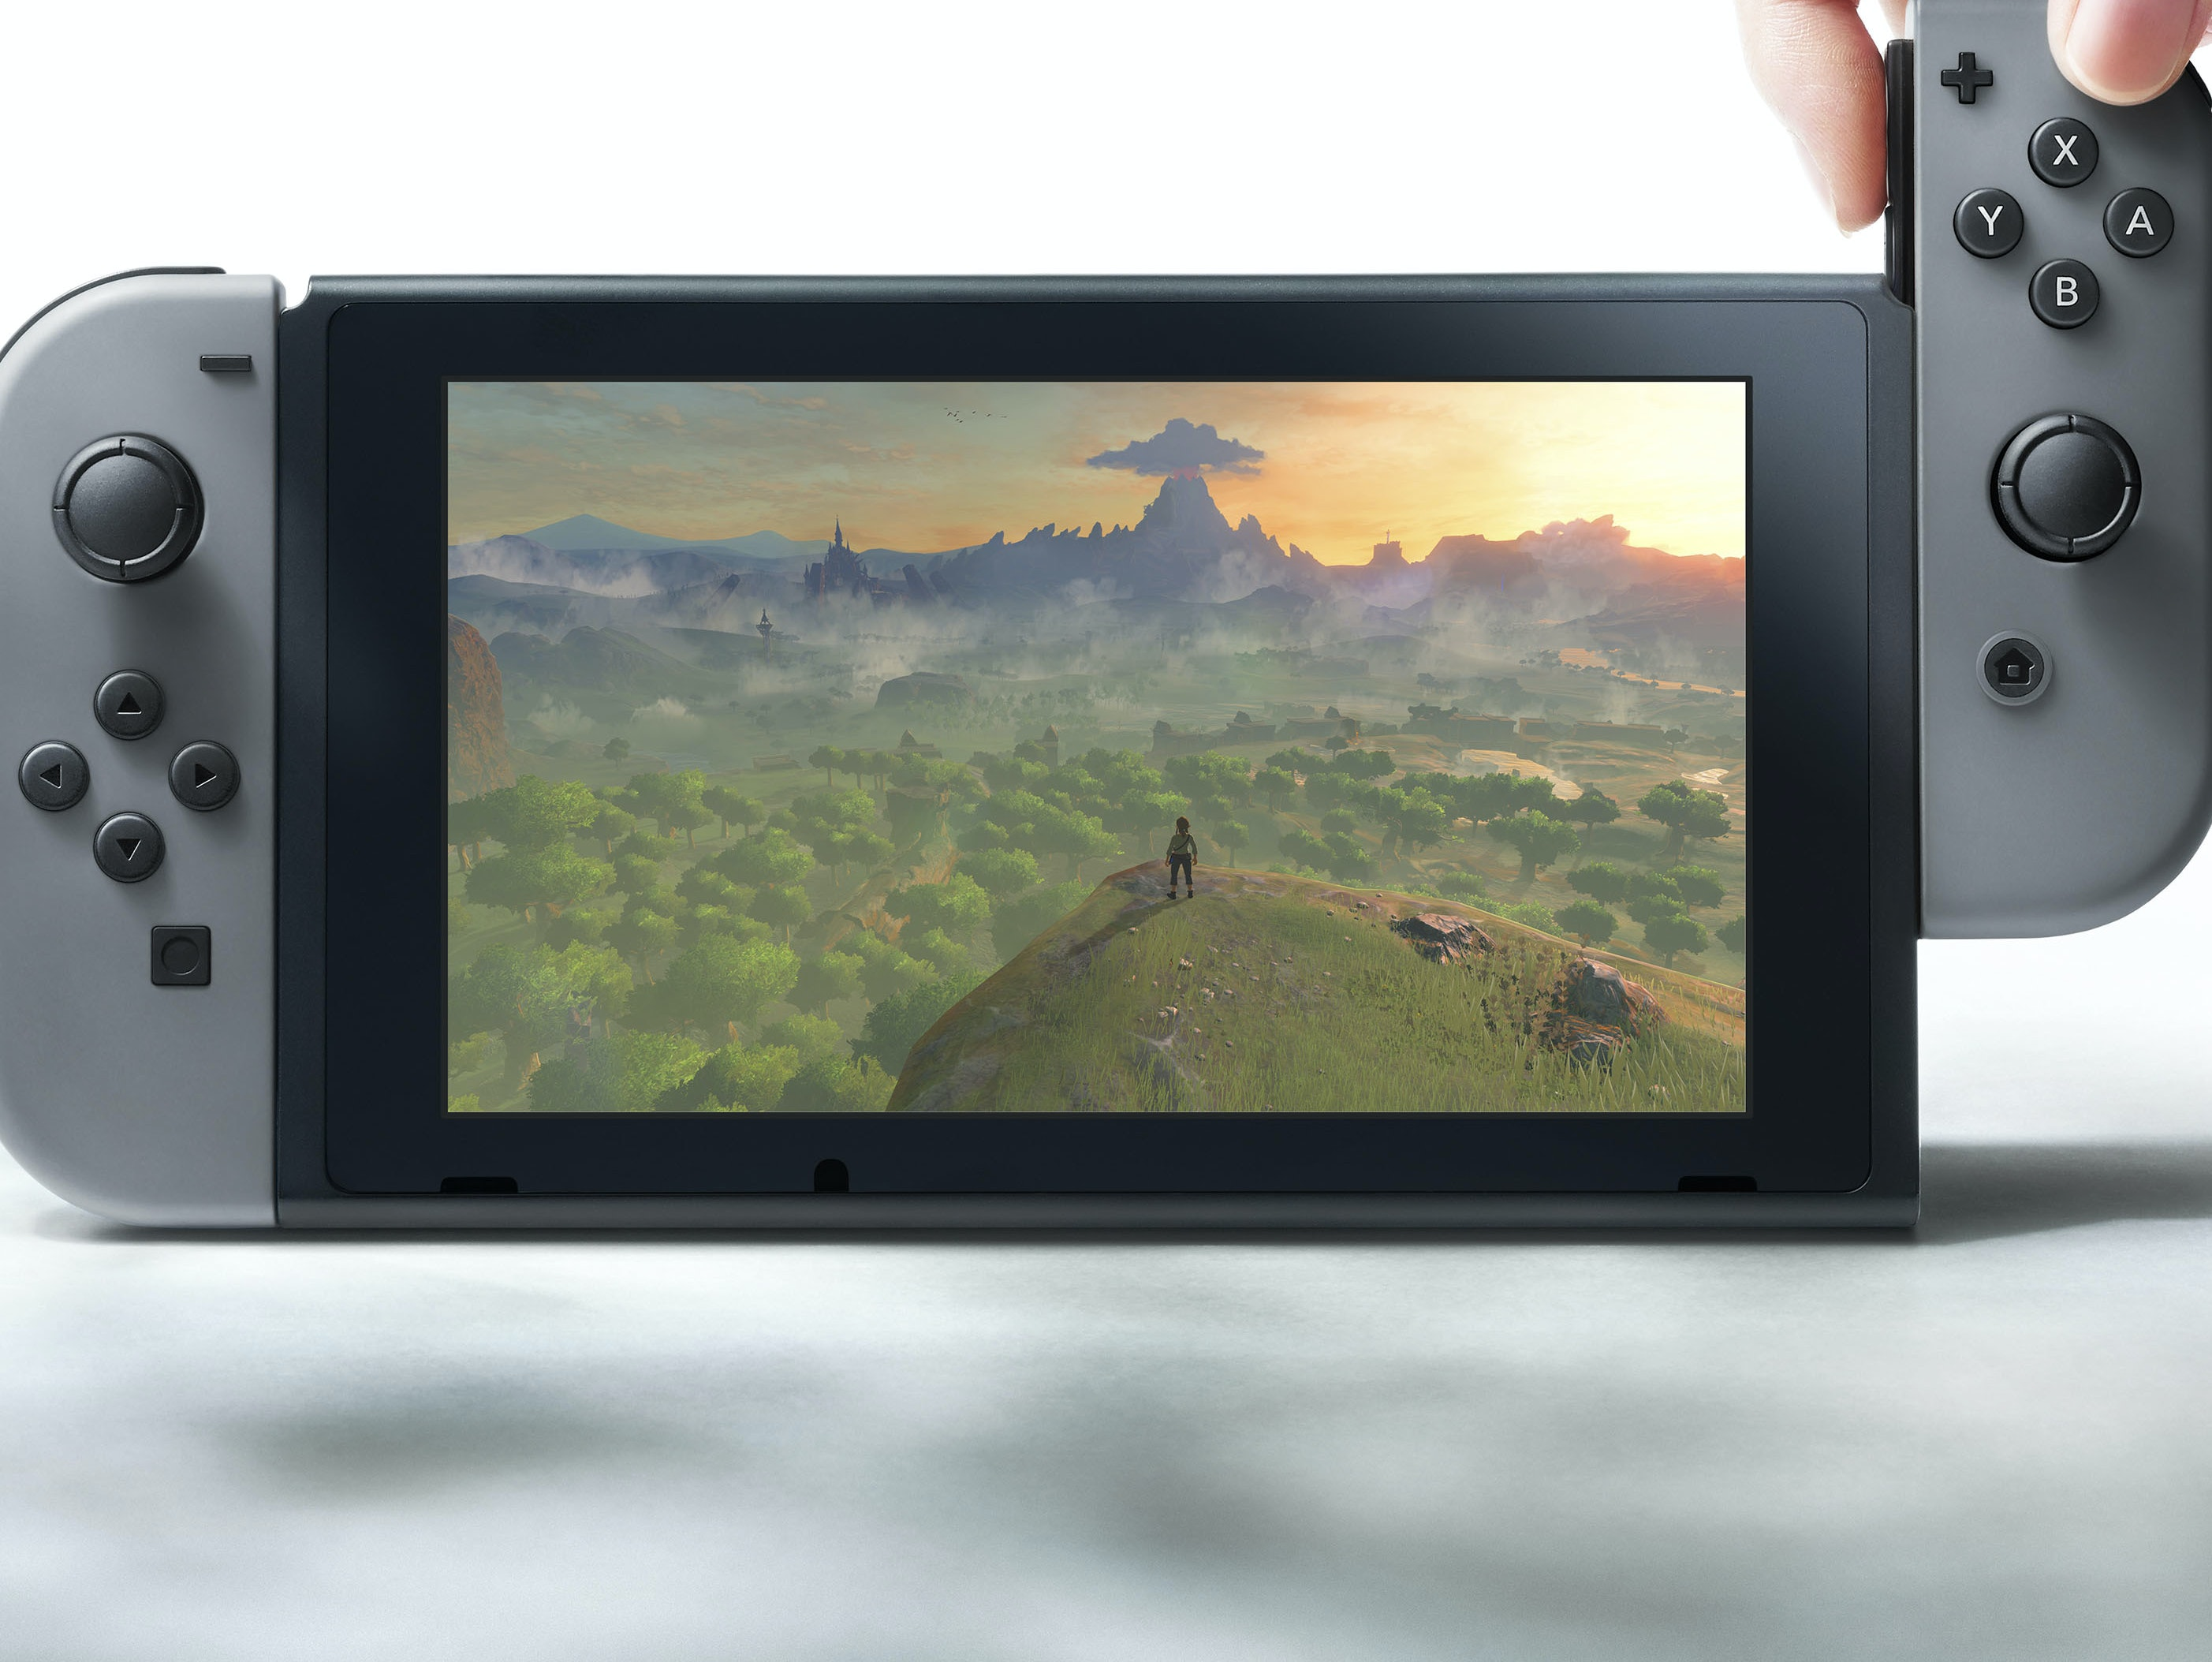 First Look: Nintendo Switch Console is a Modular Delight